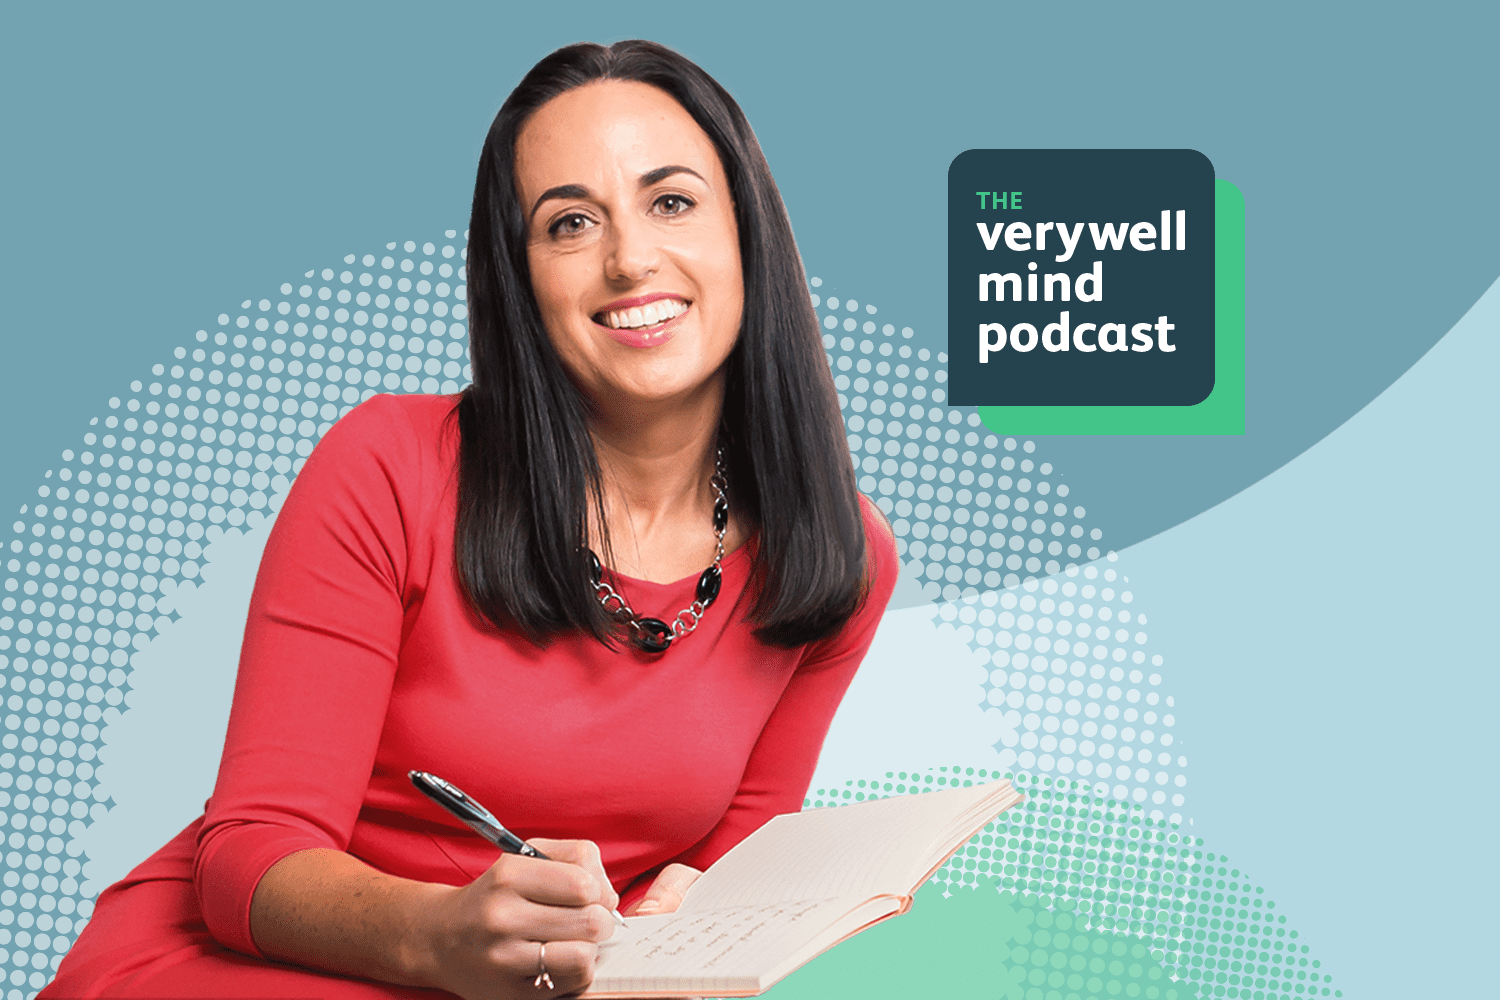 Host of The Verywell Mind Podcast Amy Morin, LCSW